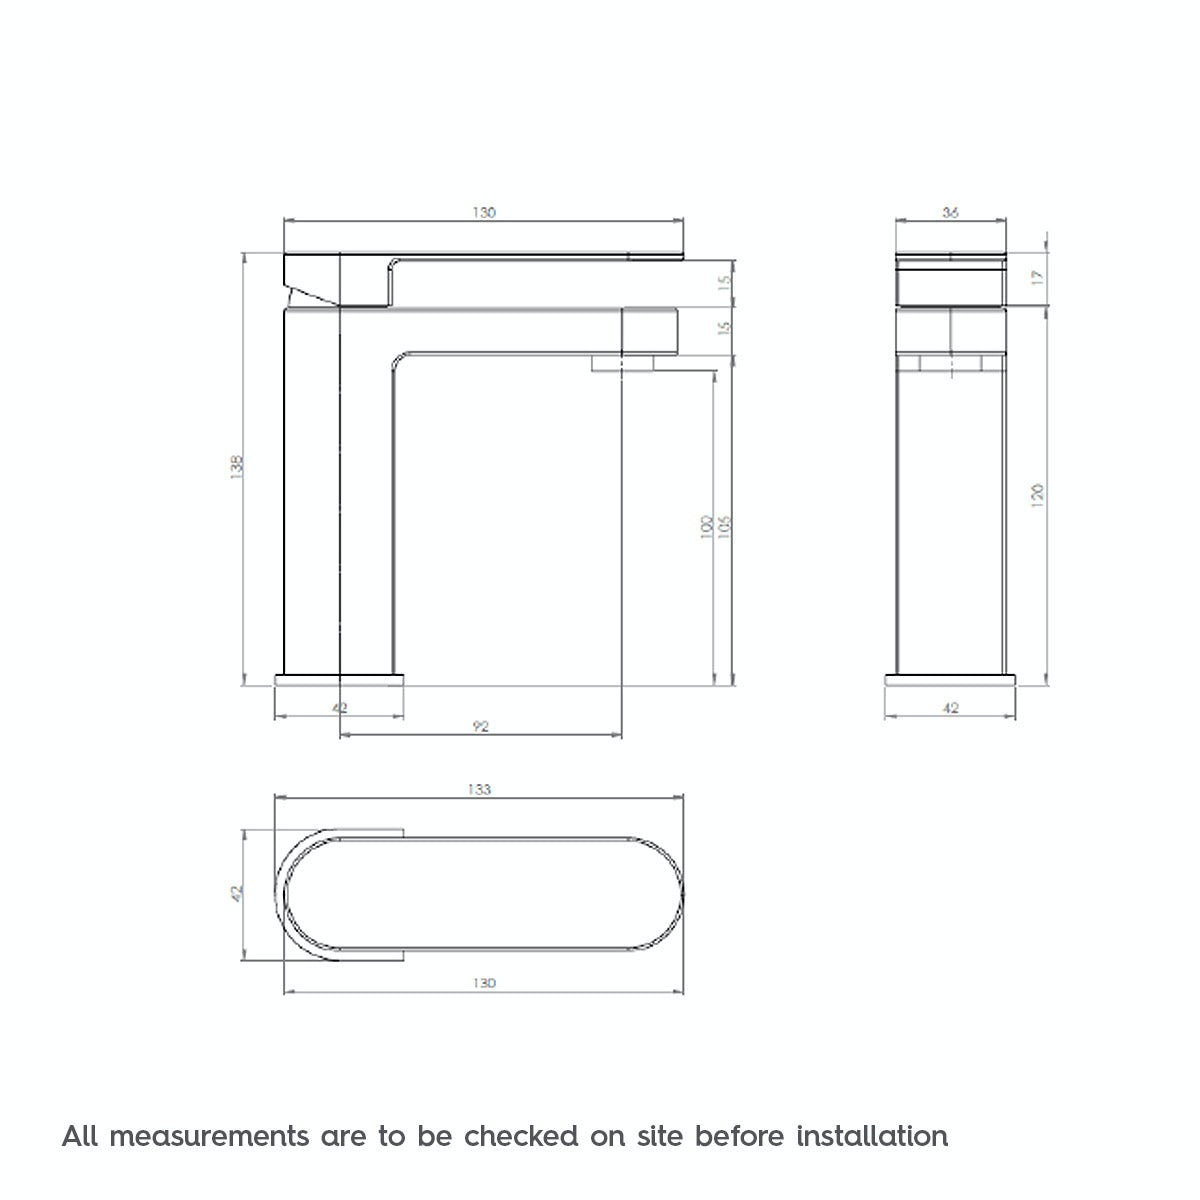 Dimensions for Mode Hardy basin mixer tap